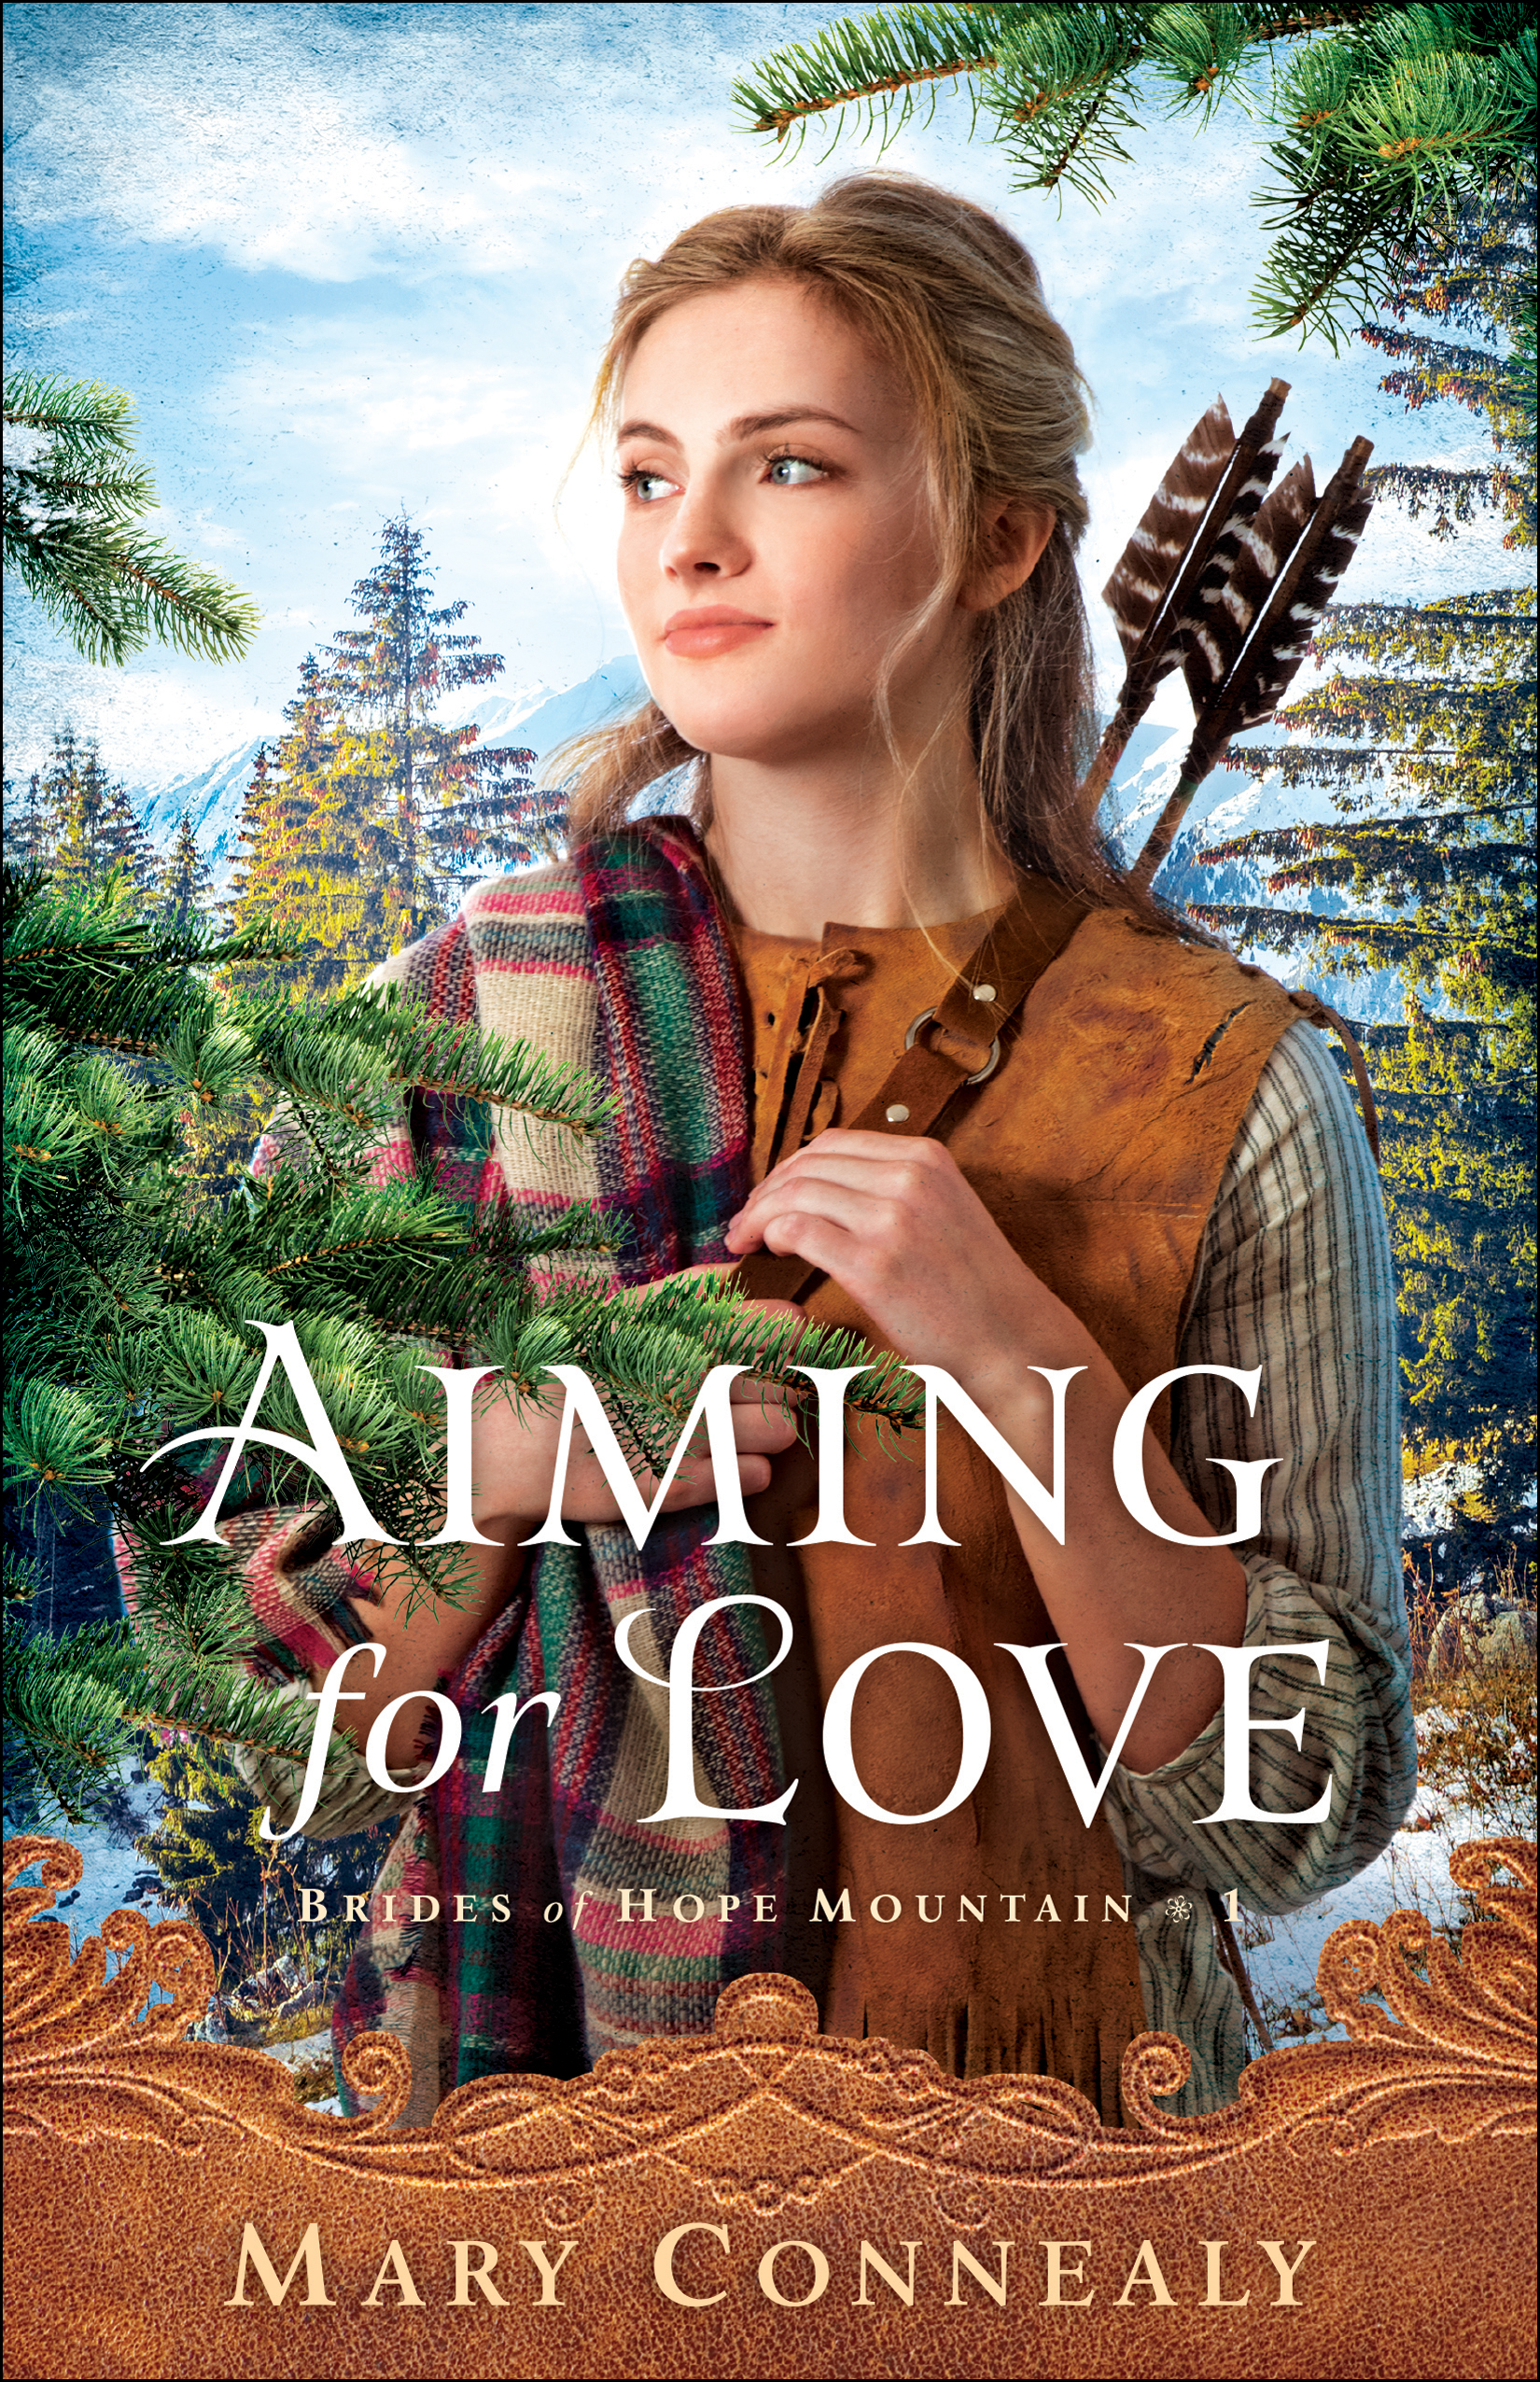 Book review of Aiming For Love by Mary Connealy (Bethany House) by papertapepins